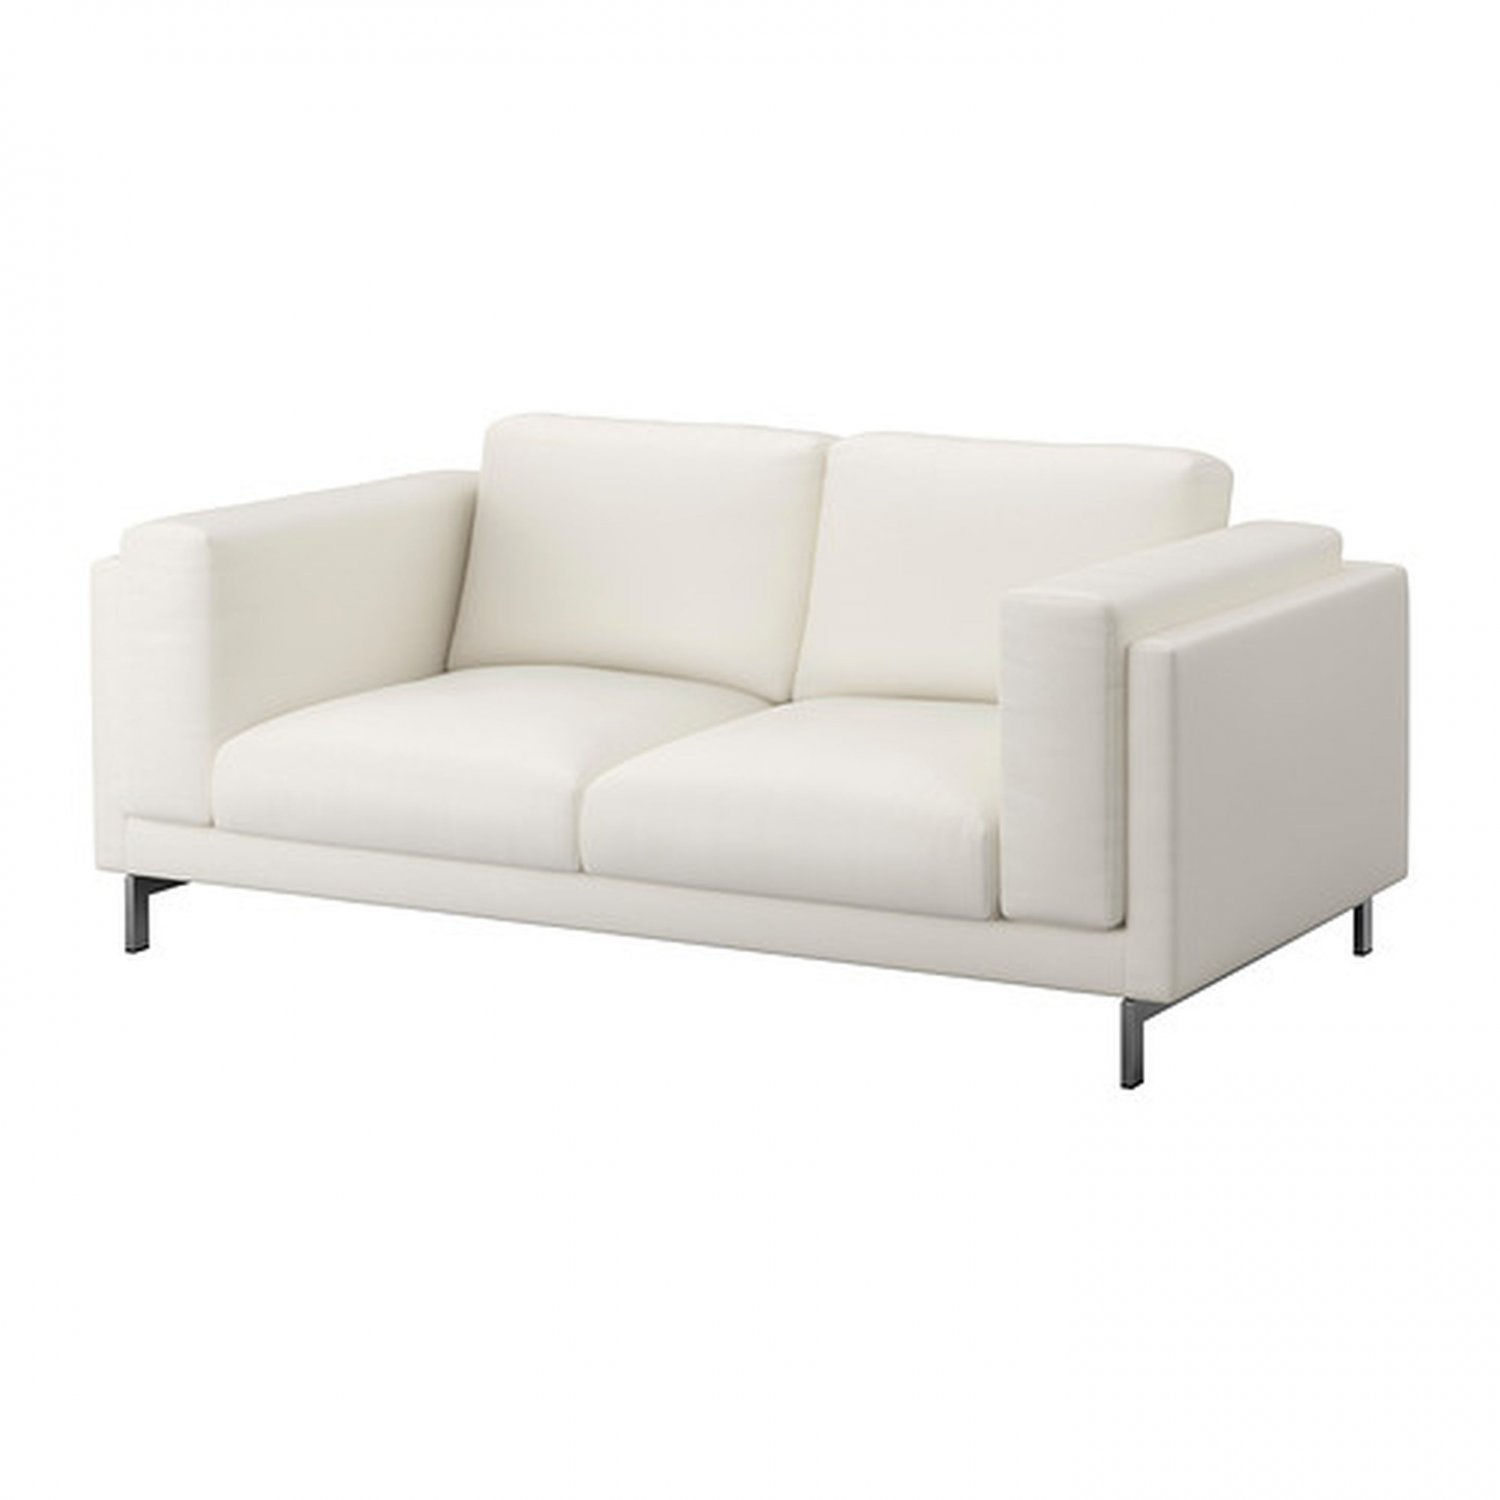 Ikea nockeby 2 seat sofa slipcover loveseat cover risane white linen blend White loveseat slipcovers